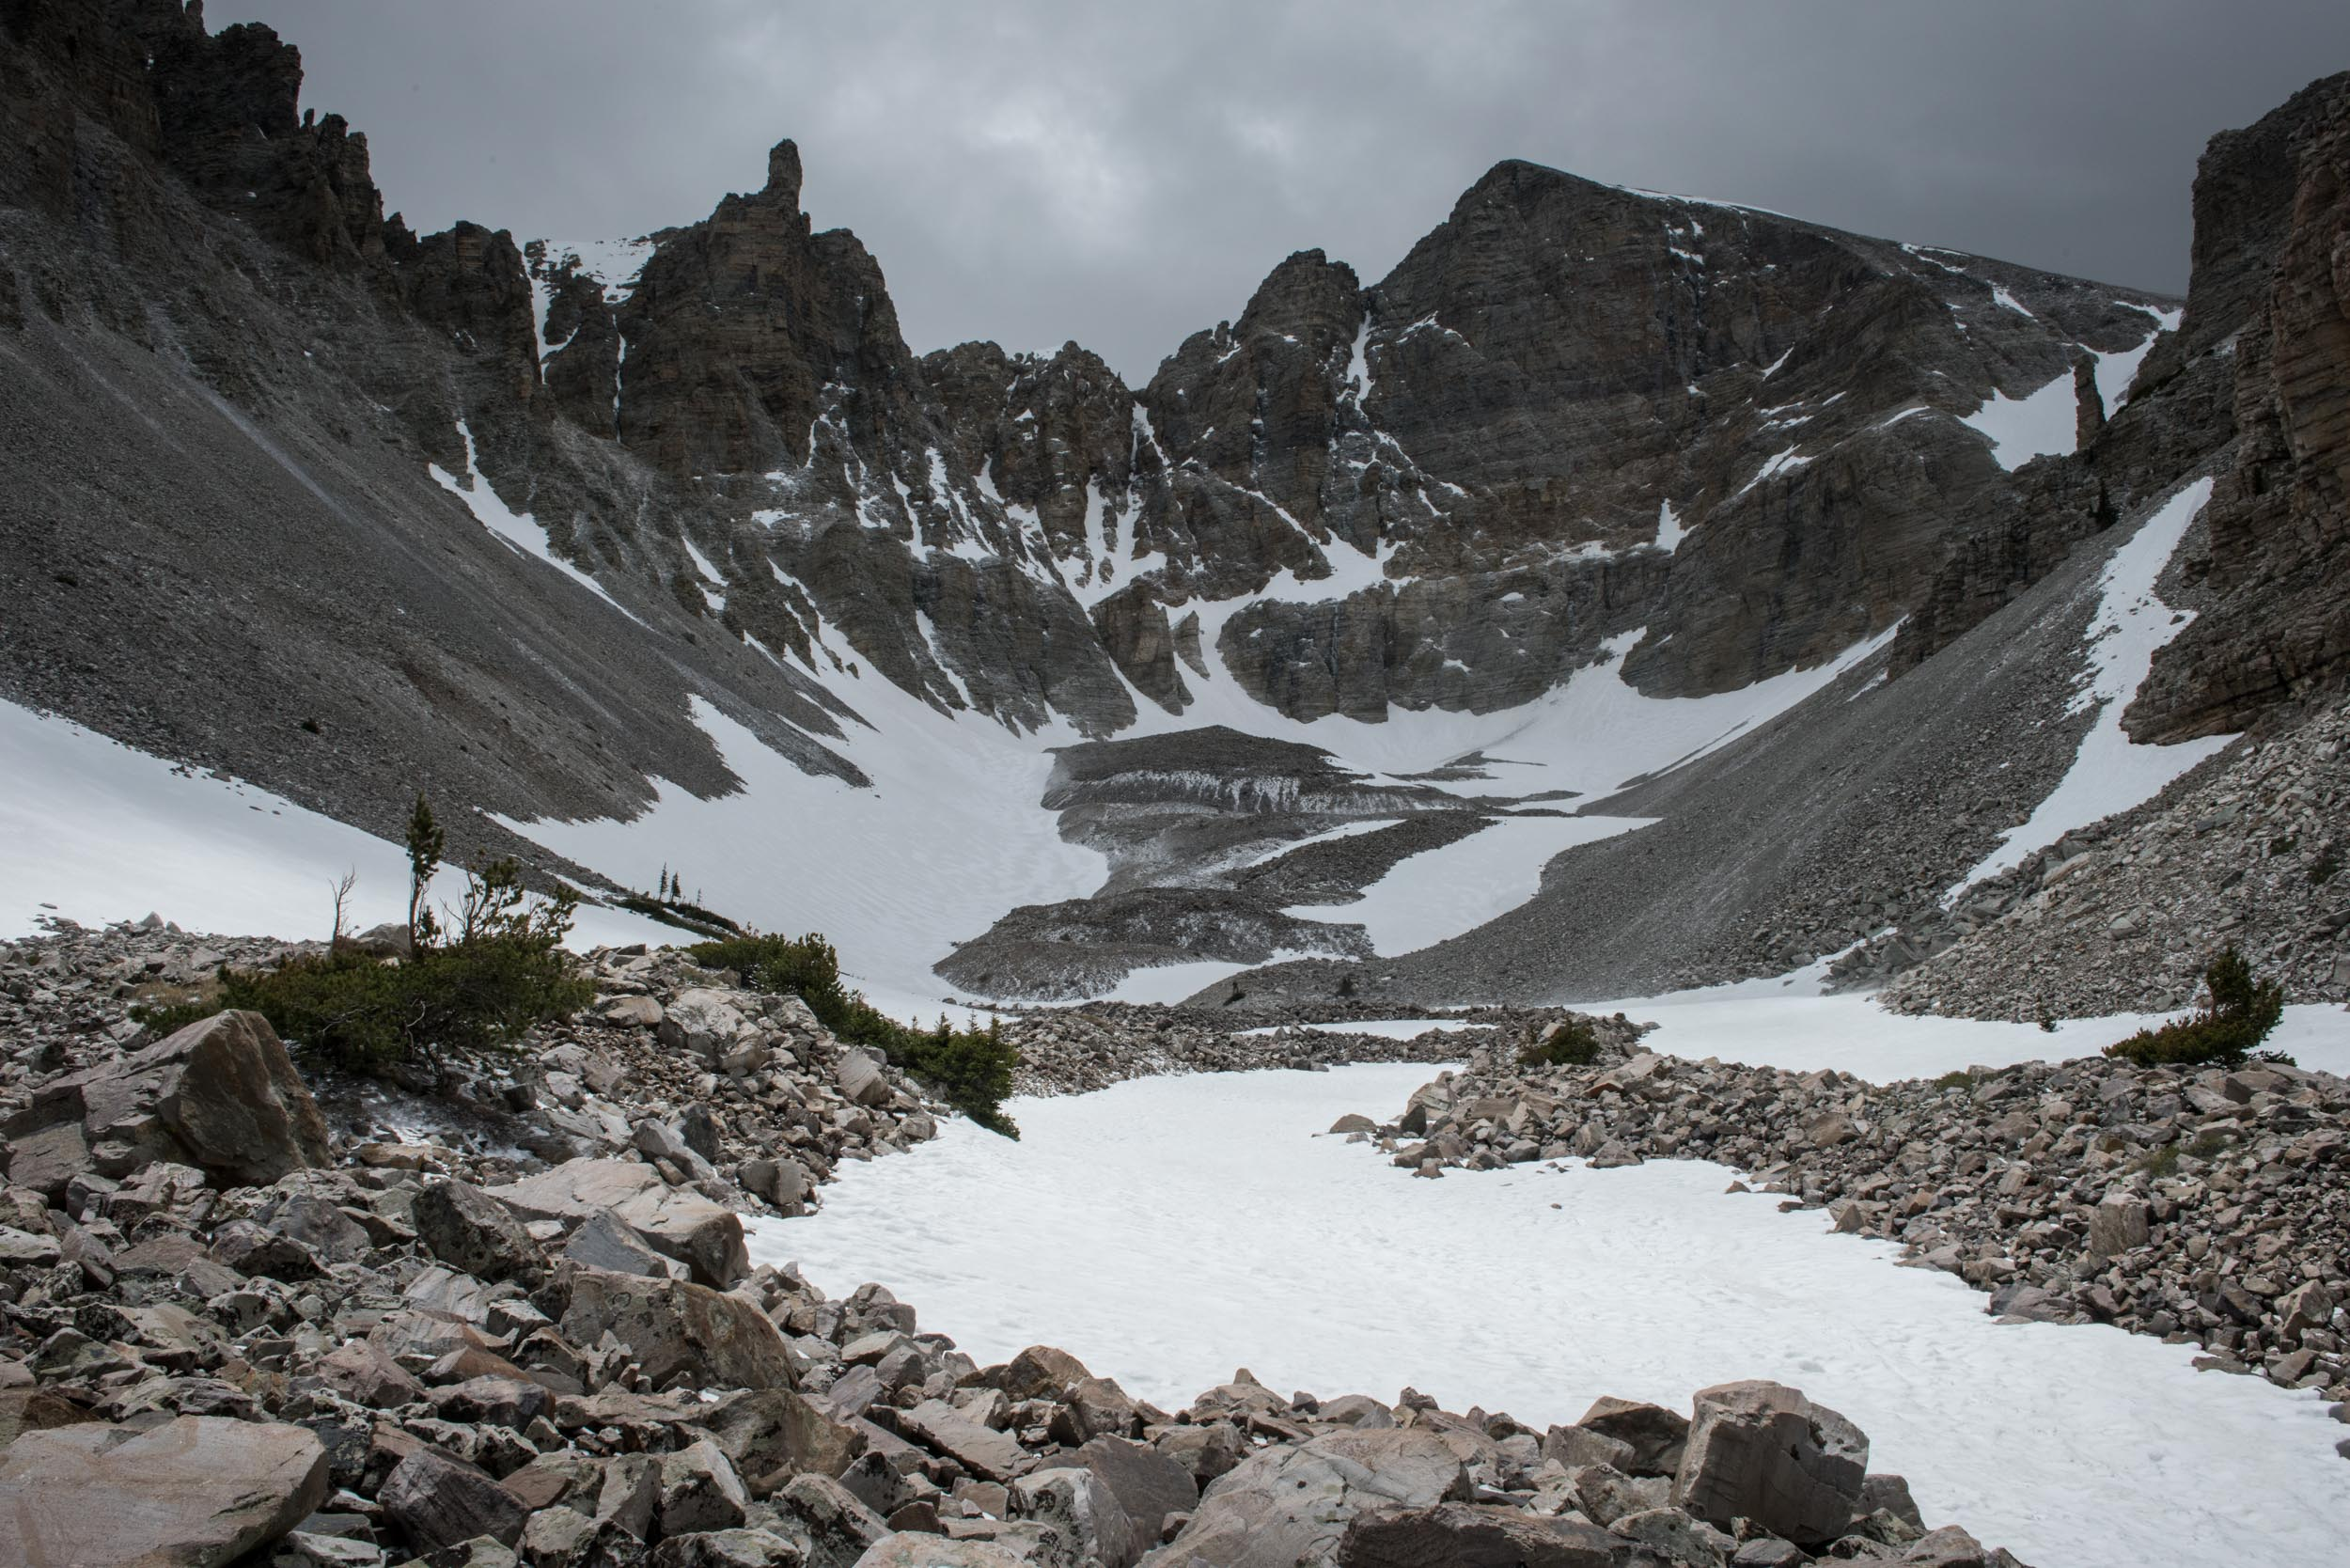 Wheeler Peak, glacier, and cirque in the Great Basin National Park, Nevada.